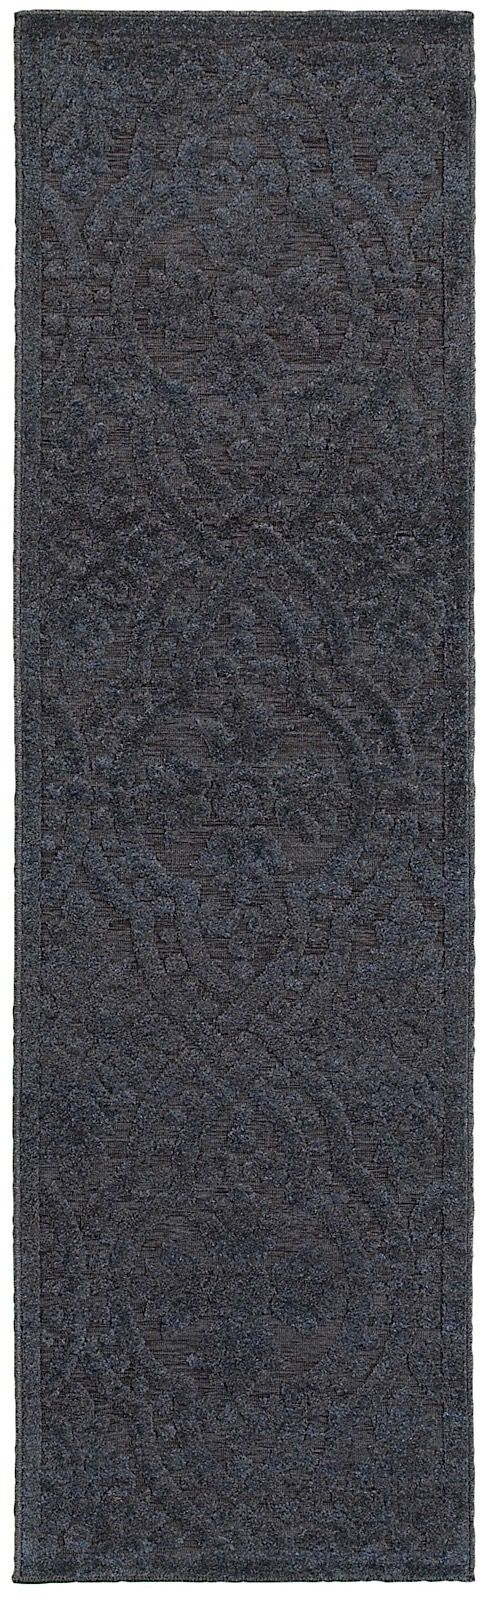 oriental weavers elisa solid/striped area rug collection